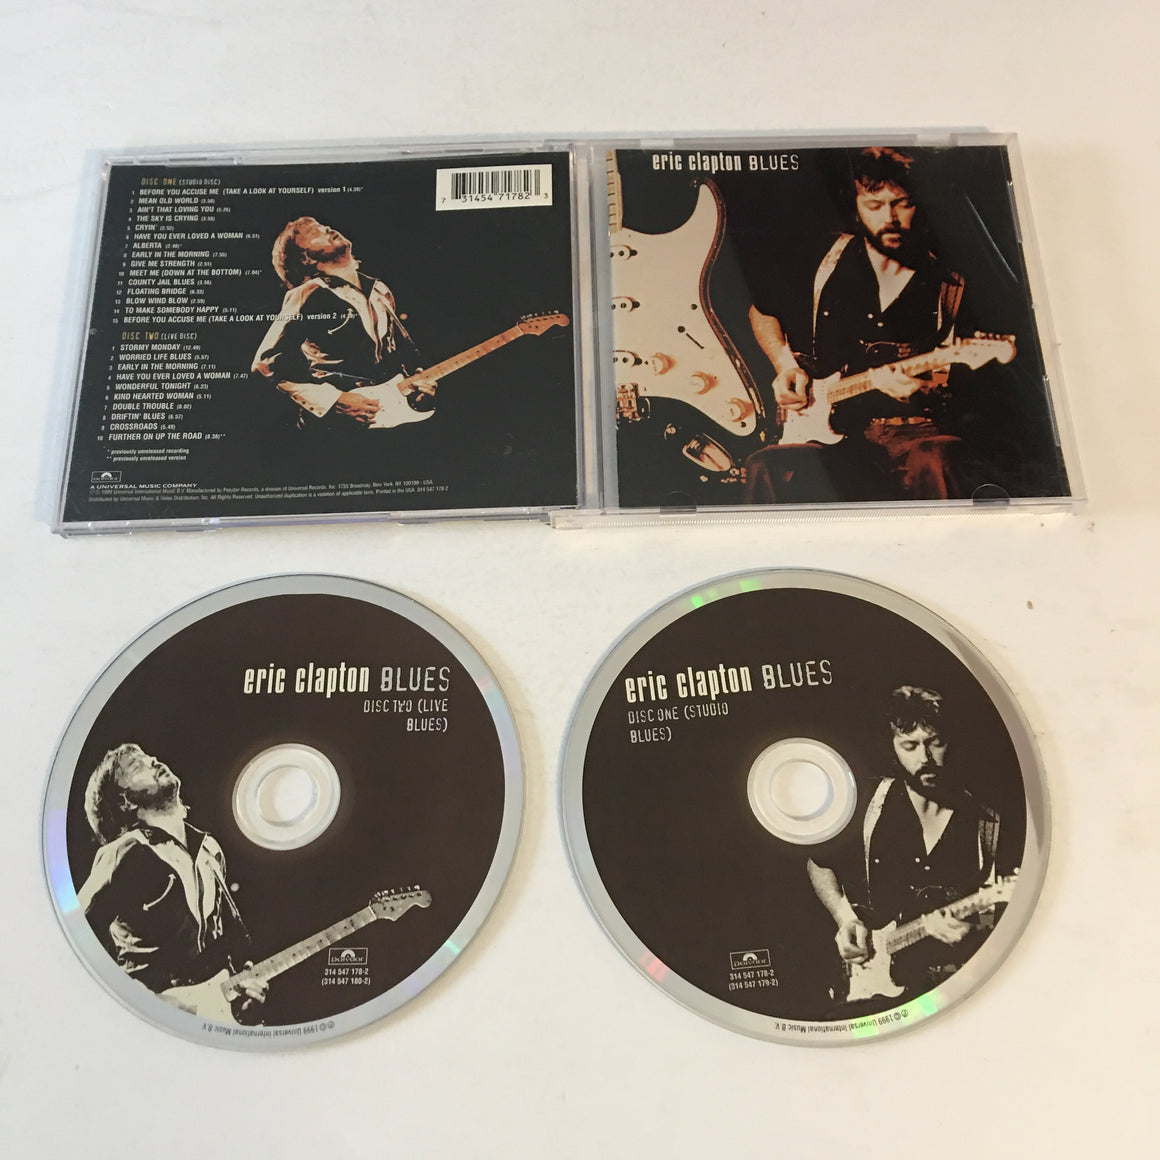 Eric Clapton Blues Used CD VG+ 314 547 178-2